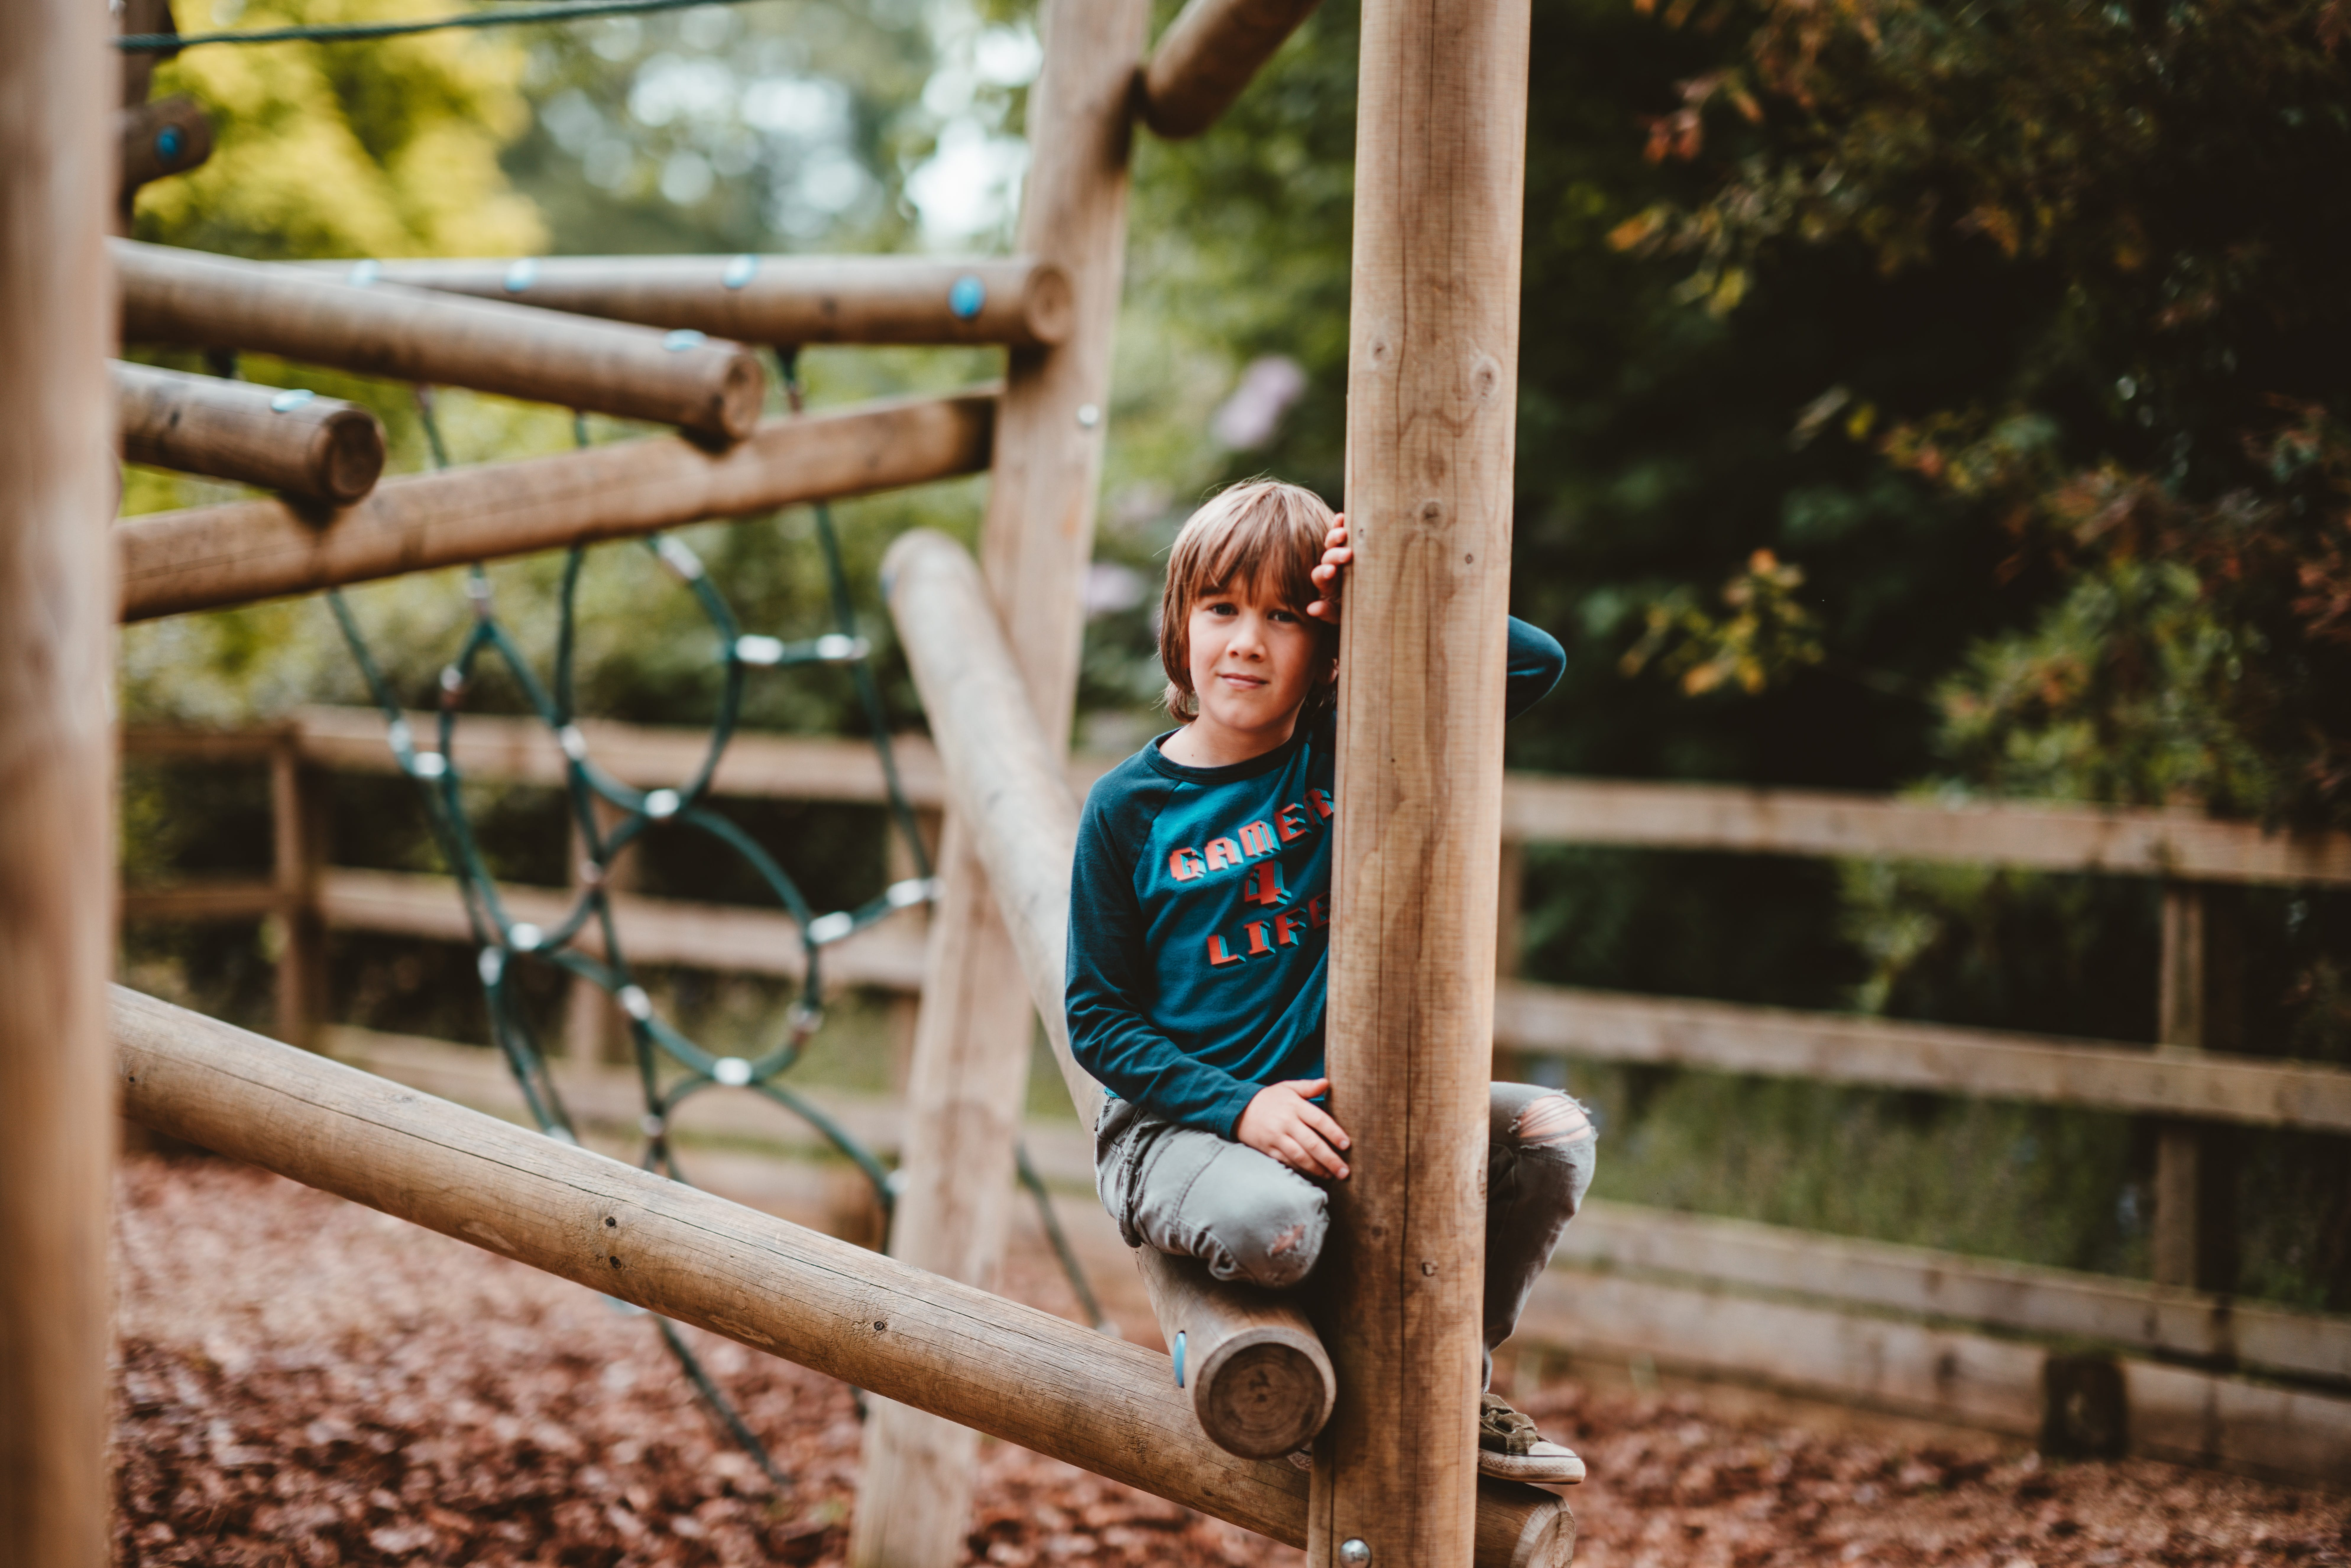 A child sat on a wooden climbing frame looking at the camera